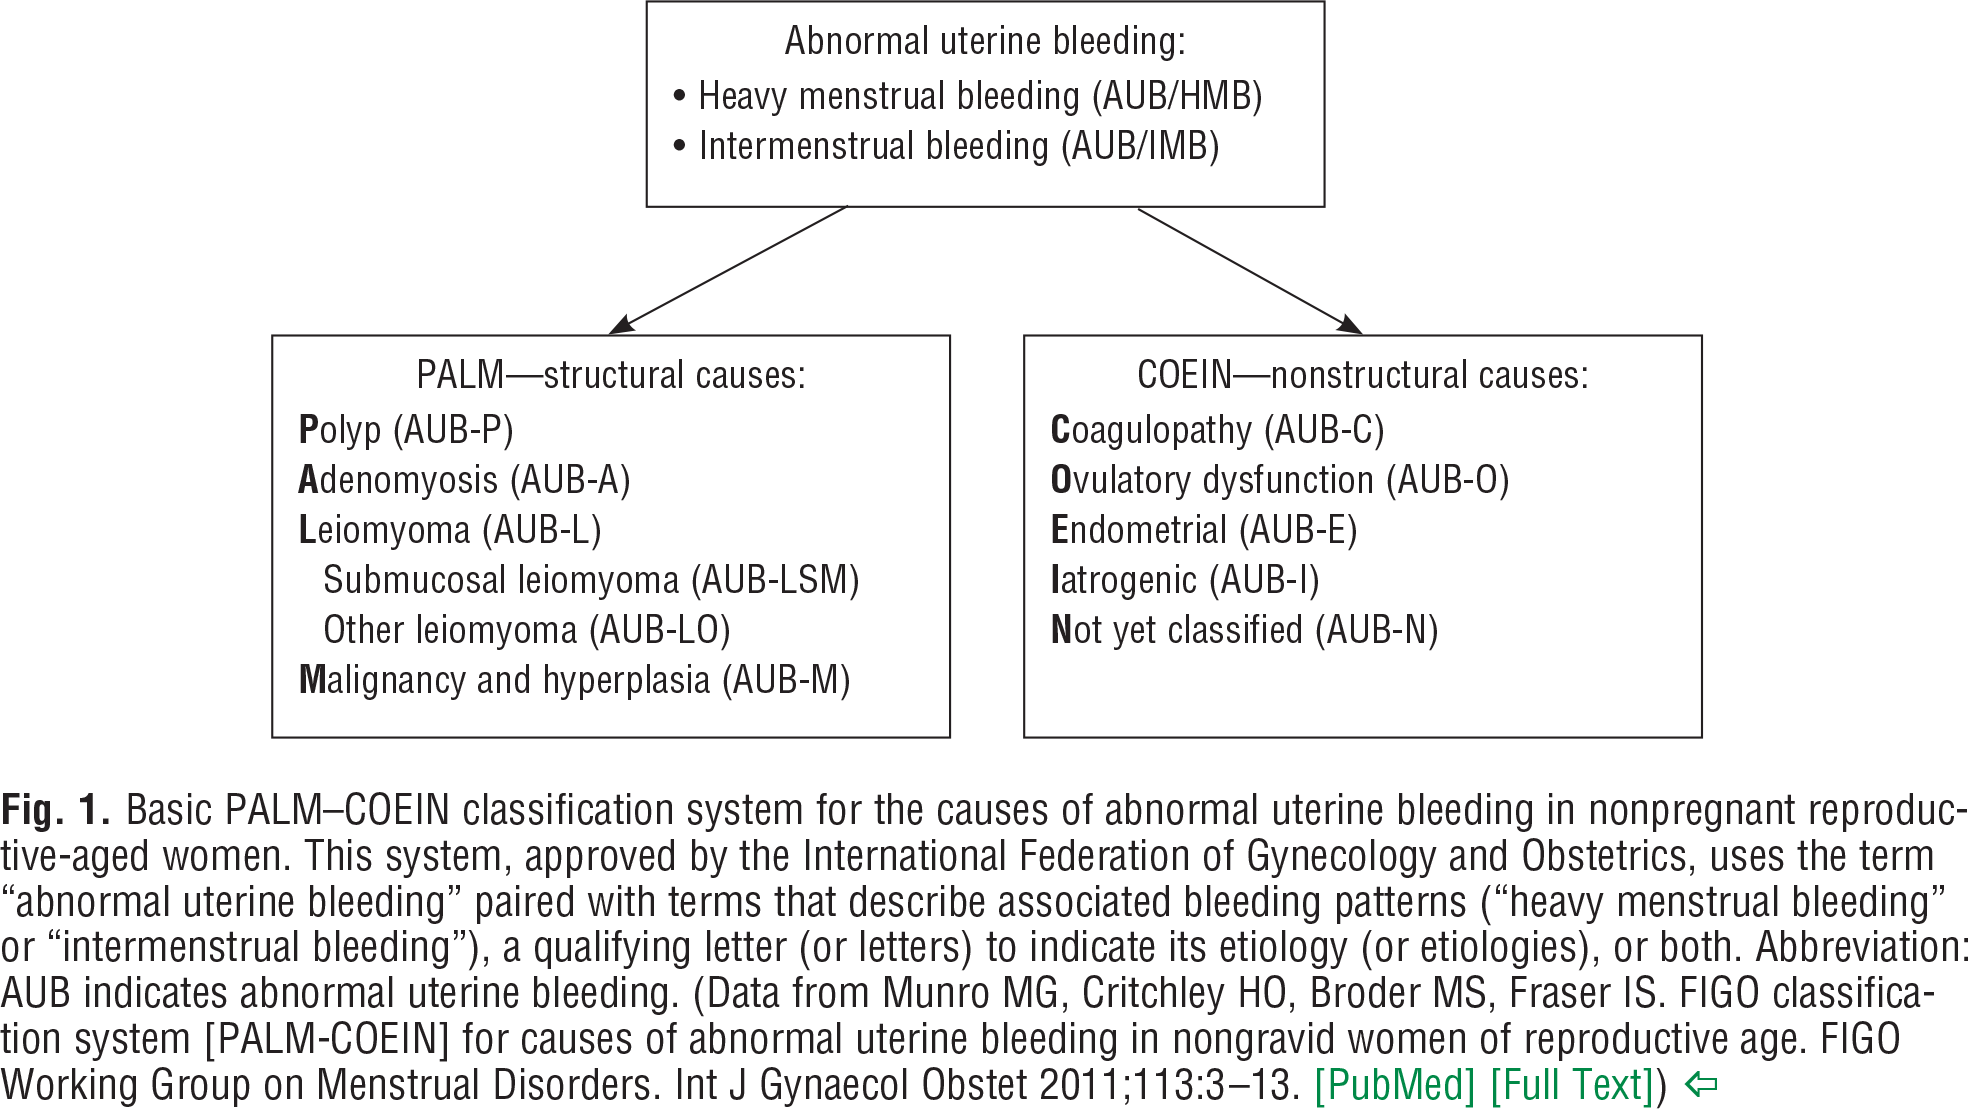 "Fig. 1 Basic PALM–COEIN classification system for the causes of abnormal uterine bleeding in nonpregnant reproductive-aged women. This system, approved by the International Federation of Gynecology and Obstetrics, uses the term ""abnormal uterine bleeding"" paired with terms that describe associated bleeding patterns (""heavy menstrual bleeding"" or ""intermenstrual bleeding""), a qualifying letter (or letters) to indicate its etiology (or etiologies), or both. Abbreviation: AUB indicates abnormal uterine bleeding. (Data from Munro MG, Critchley HO, Broder MS, Fraser IS. FIGO classification system [PALM-COEIN] for causes of abnormal uterine bleeding in nongravid women of reproductive age. FIGO Working Group on Menstrual Disorders. Int J Gynaecol Obstet 2011;113:3–13. [